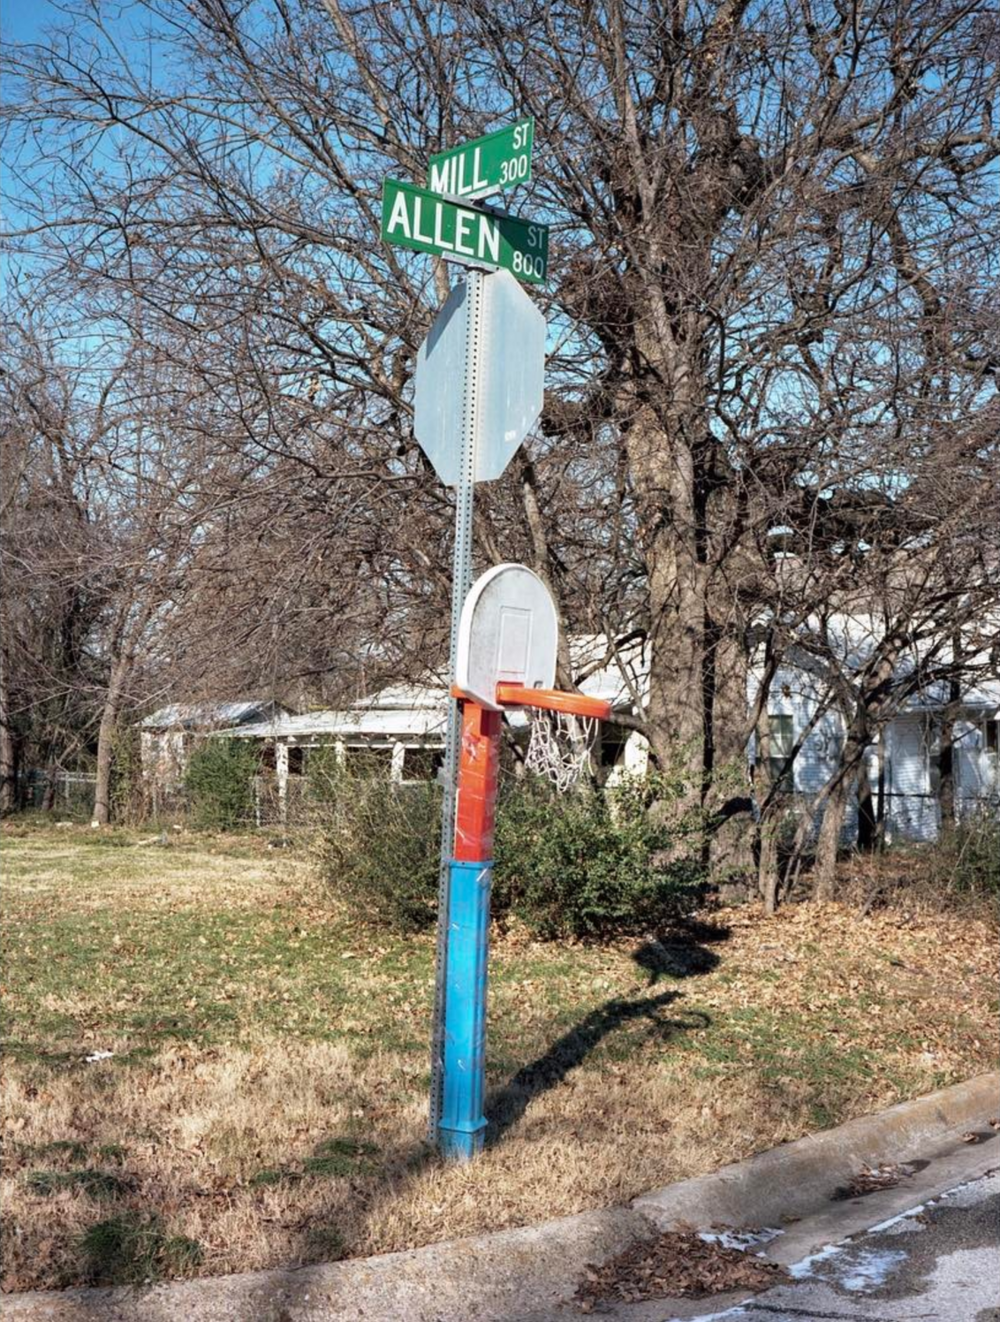 When you ball so hard that your hoop doesn't stand up on its own anymore, you figure something out. Photo by @aaronlancelopez